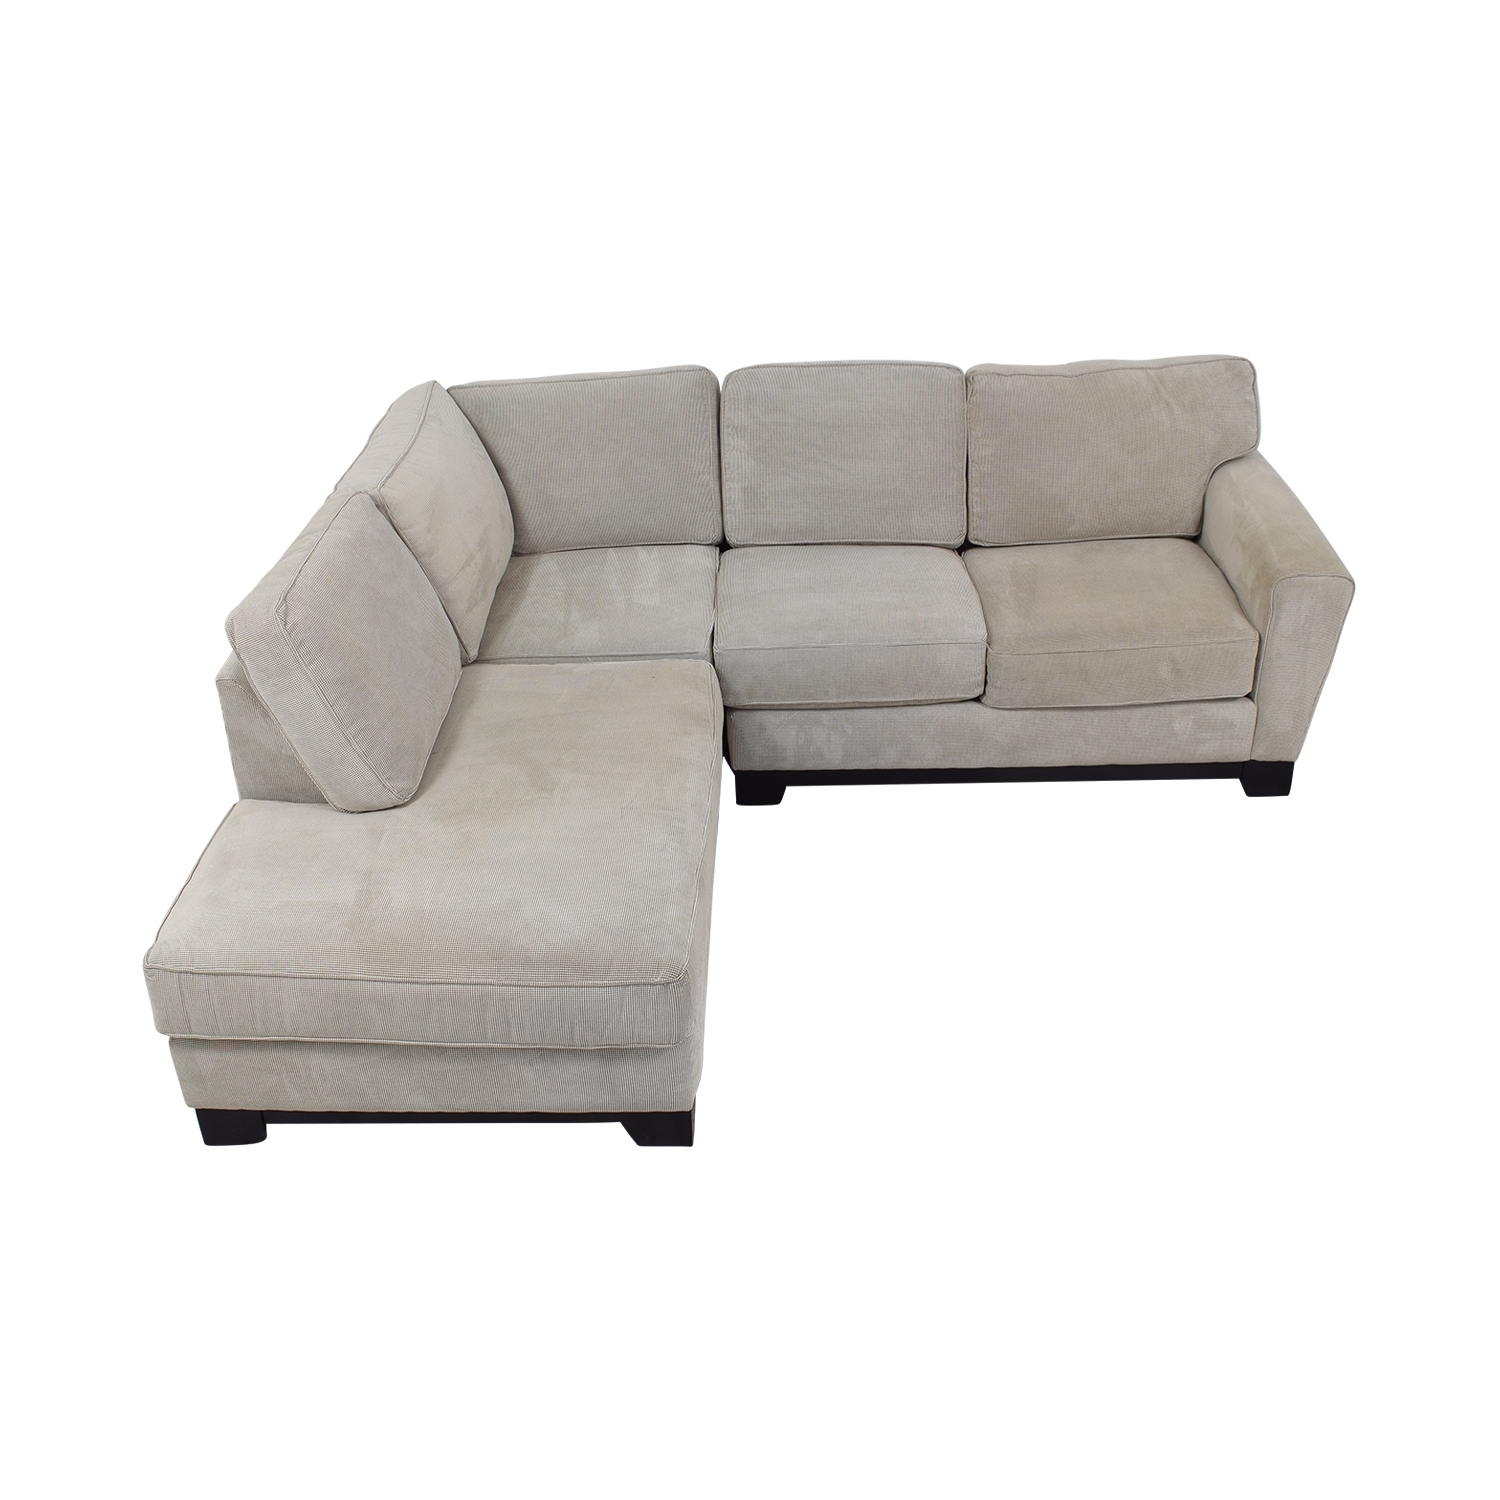 [%80% Off – Jordan's Furniture Jordan's Furniture Beige L Shaped Inside Most Up To Date Jordans Sectional Sofas|Jordans Sectional Sofas For Favorite 80% Off – Jordan's Furniture Jordan's Furniture Beige L Shaped|Newest Jordans Sectional Sofas For 80% Off – Jordan's Furniture Jordan's Furniture Beige L Shaped|Most Recent 80% Off – Jordan's Furniture Jordan's Furniture Beige L Shaped Pertaining To Jordans Sectional Sofas%] (View 2 of 15)